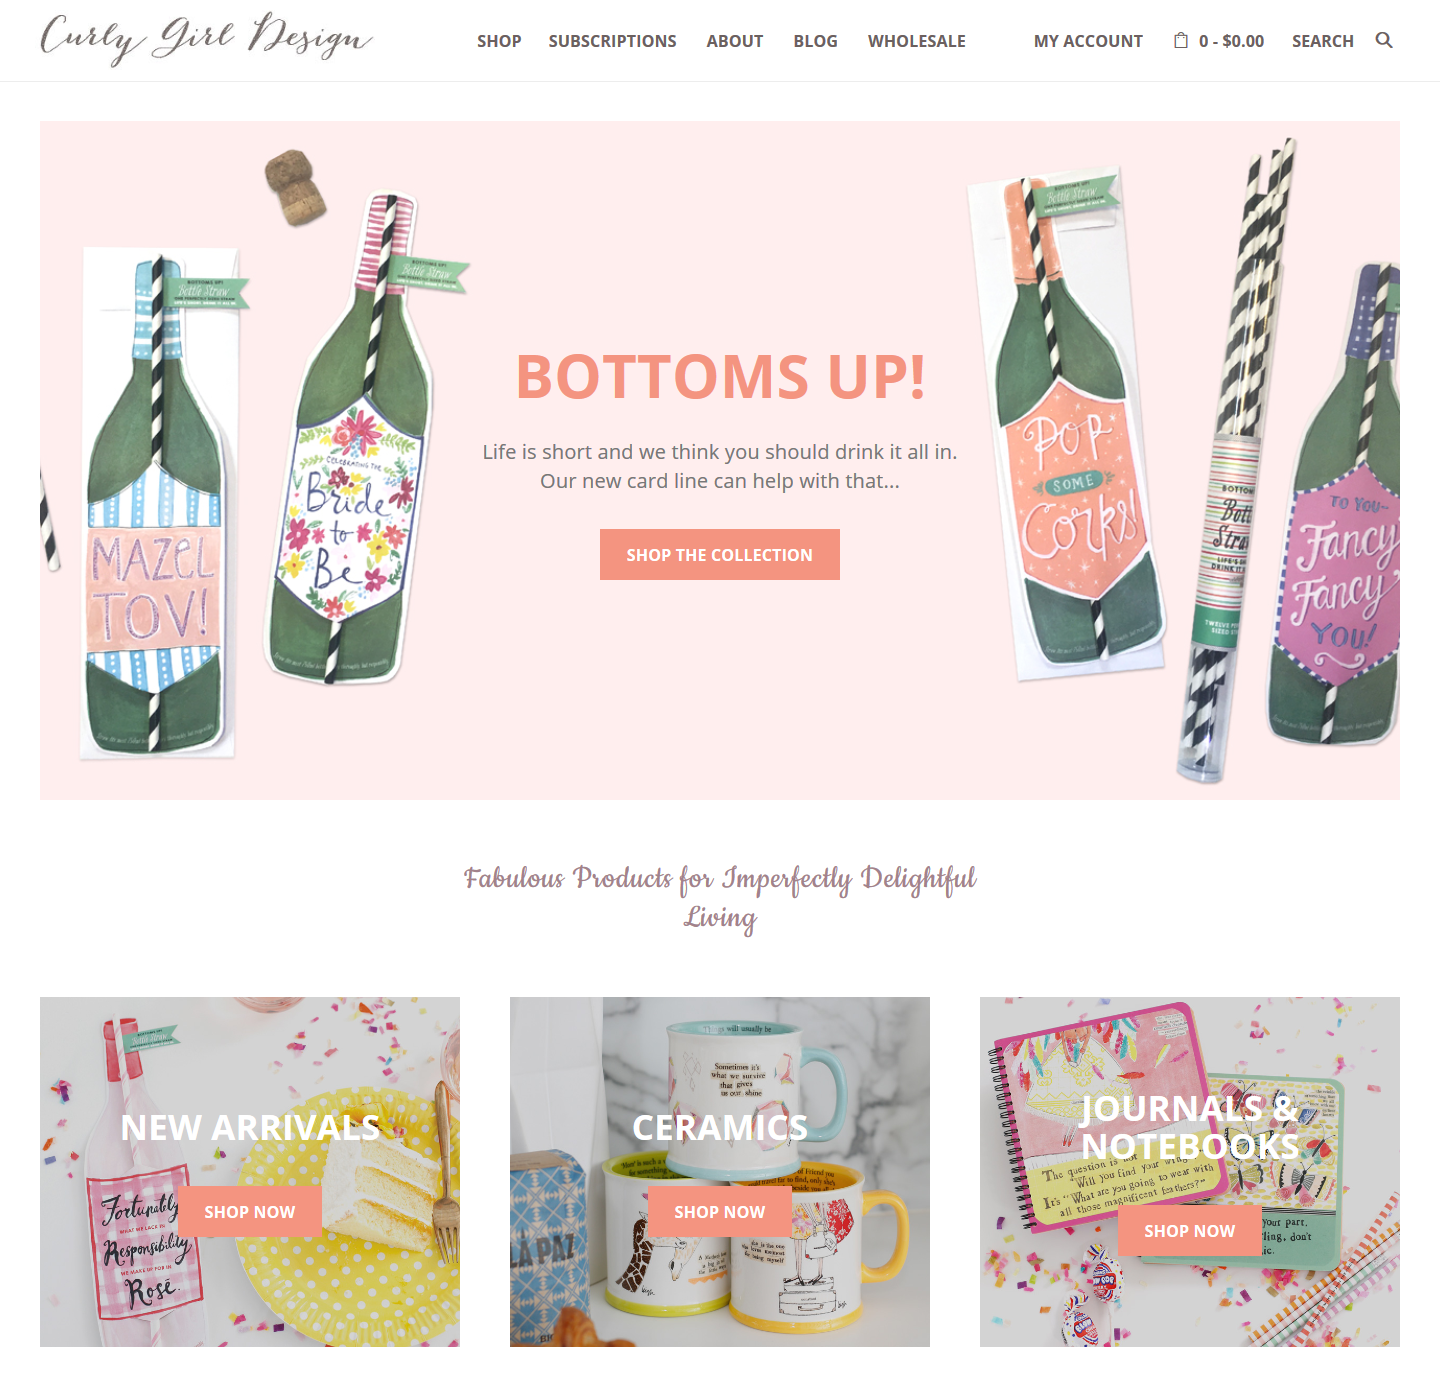 Curly Girl Design WordPress Ecommerce Site